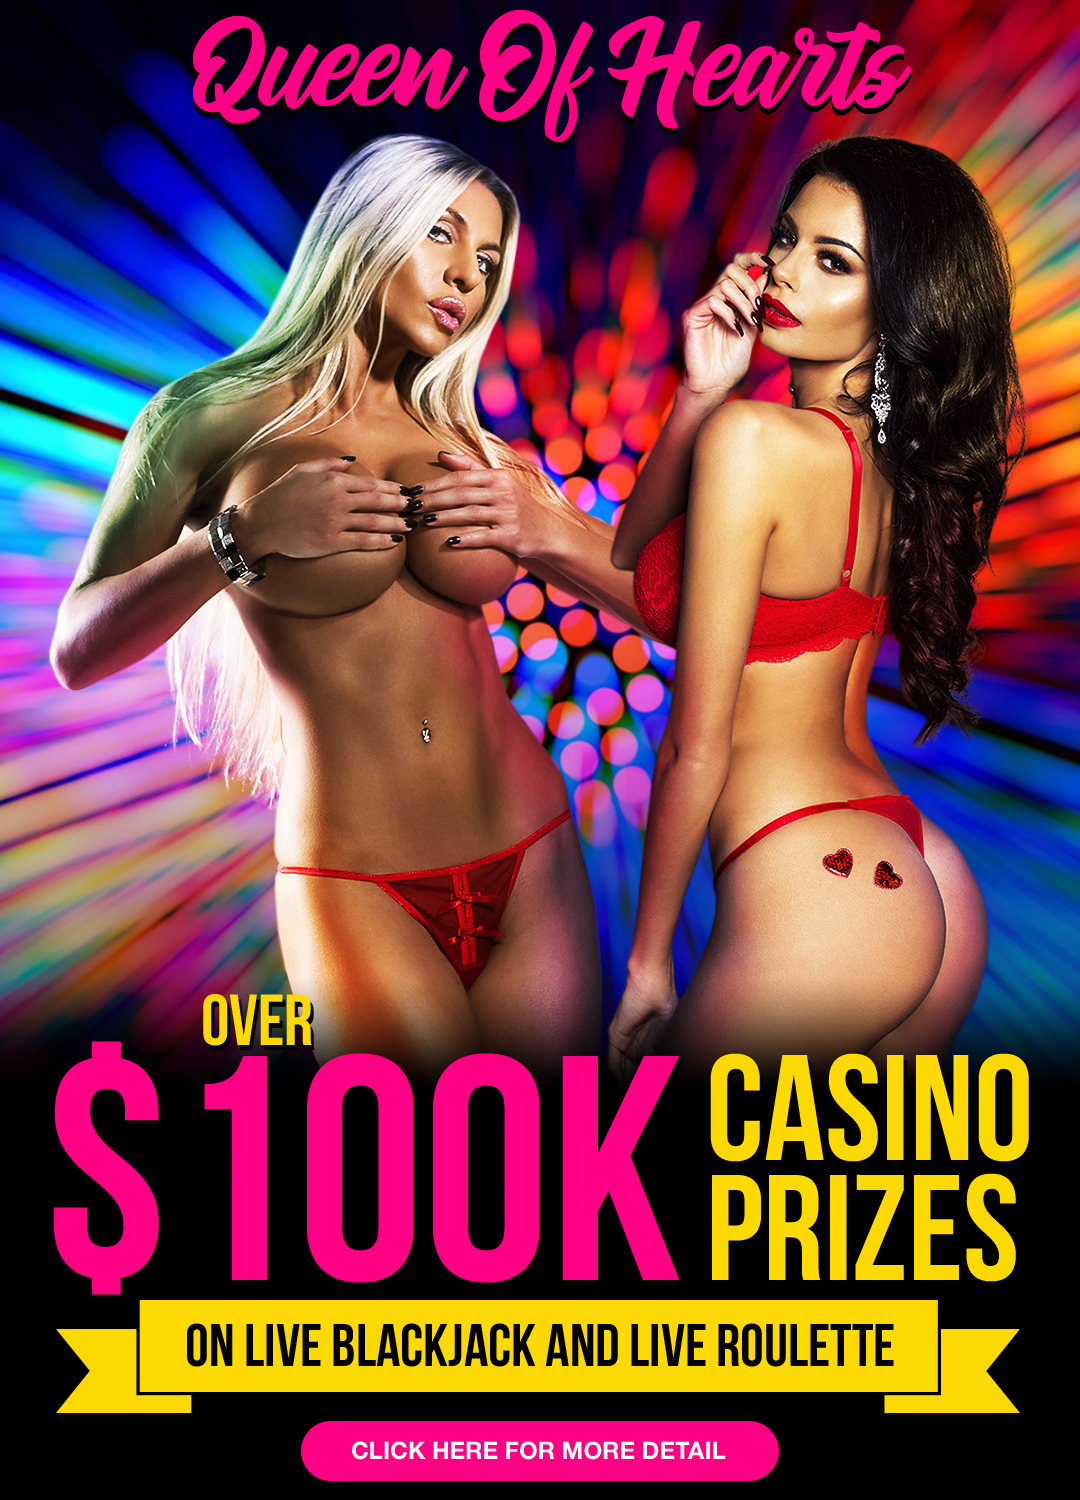 queen-of-hearts-on-all-live-casino-suppliers-in-prizes-100k